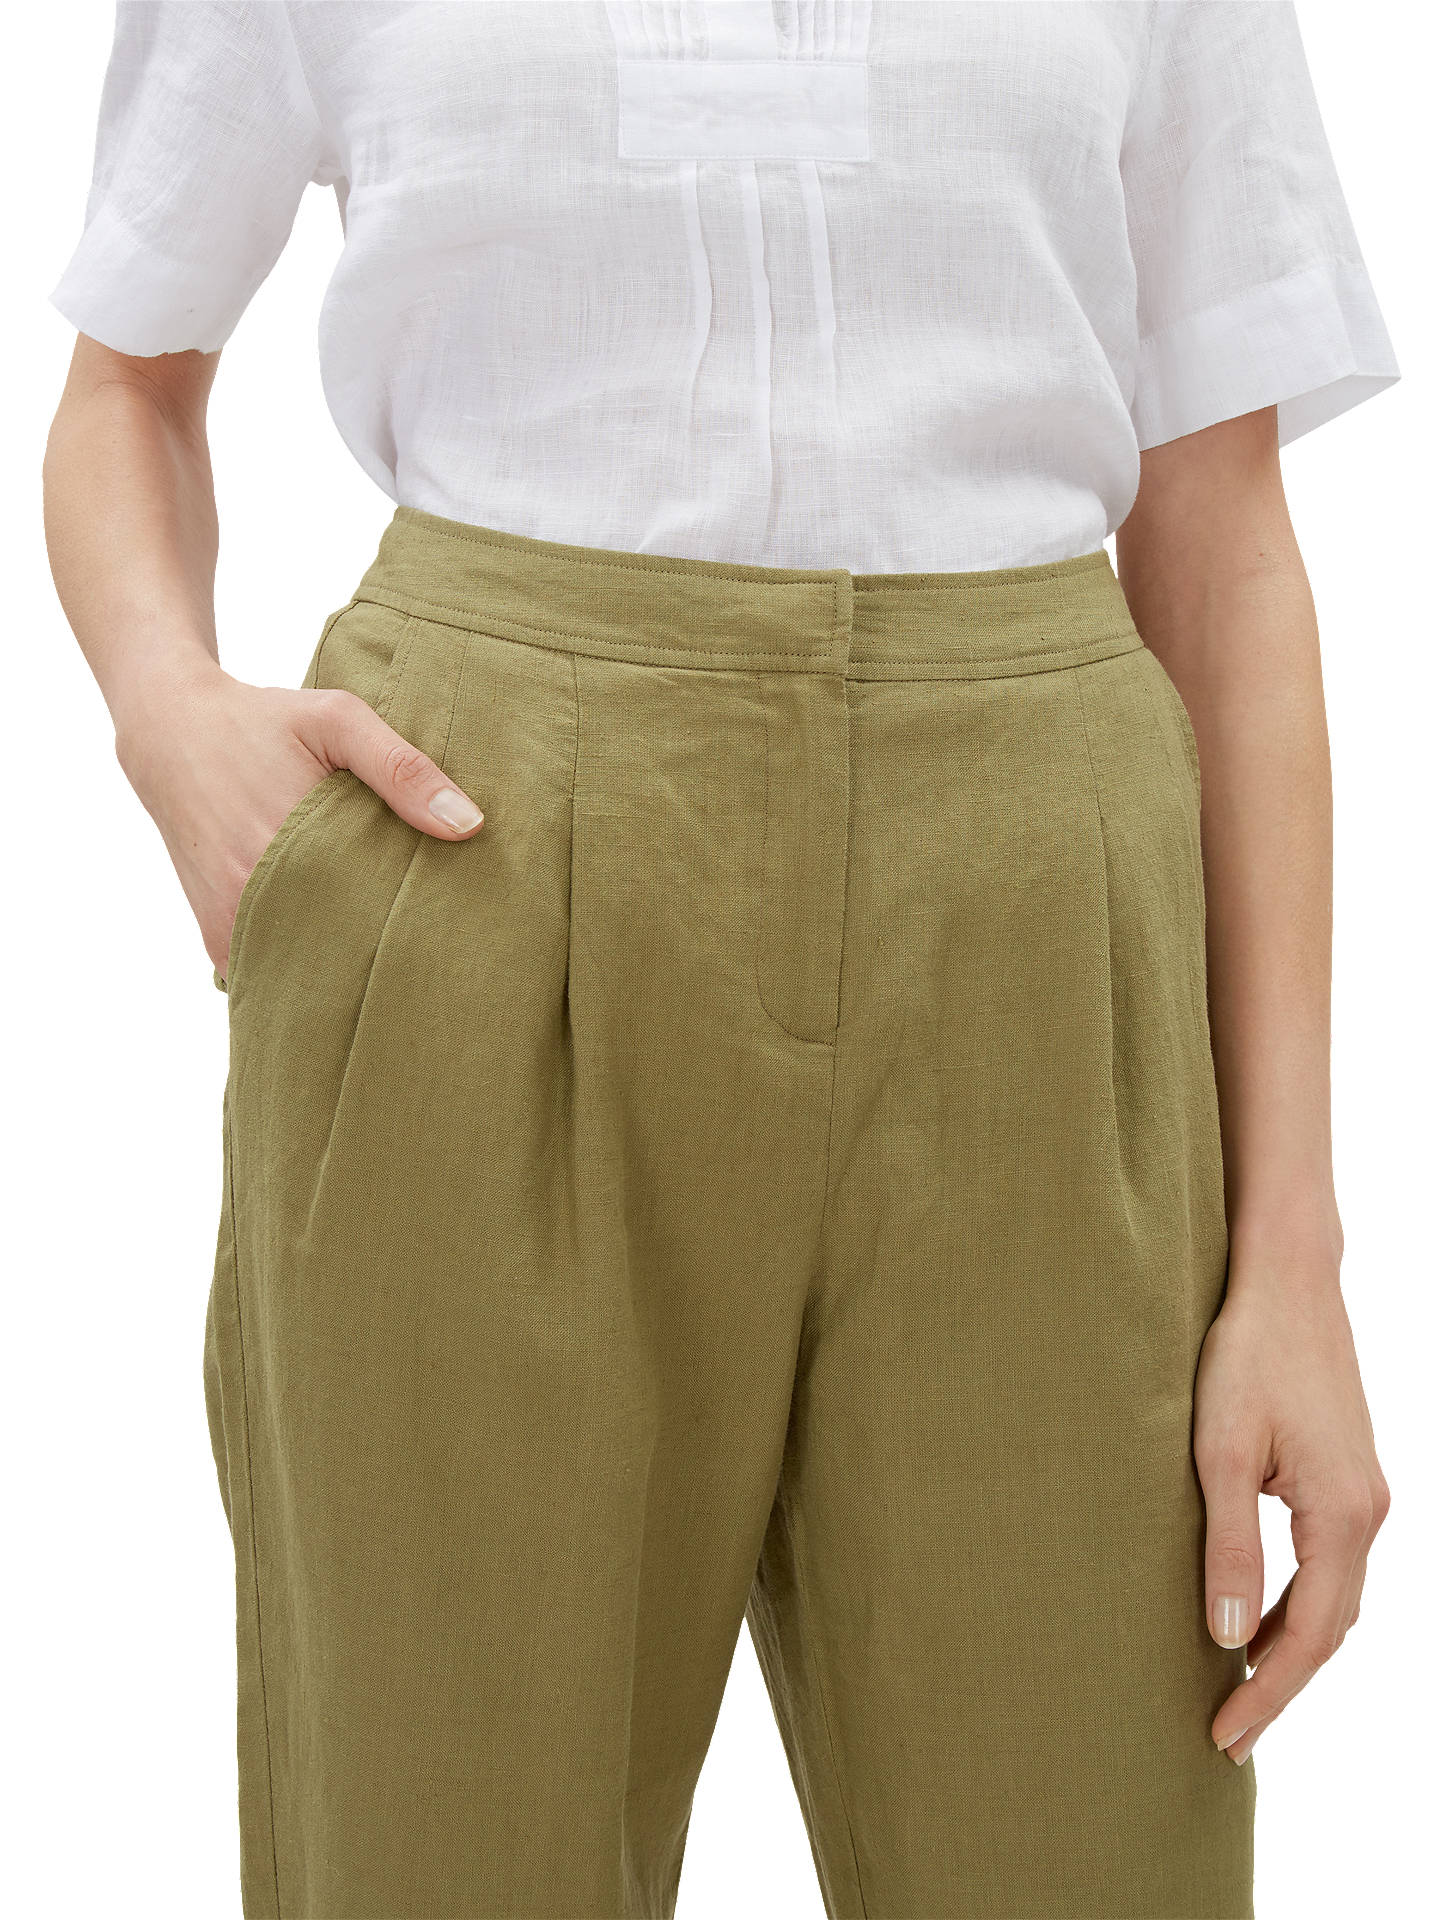 BuyJaeger Linen Peg Leg Trousers, Khaki, 14 Online at johnlewis.com